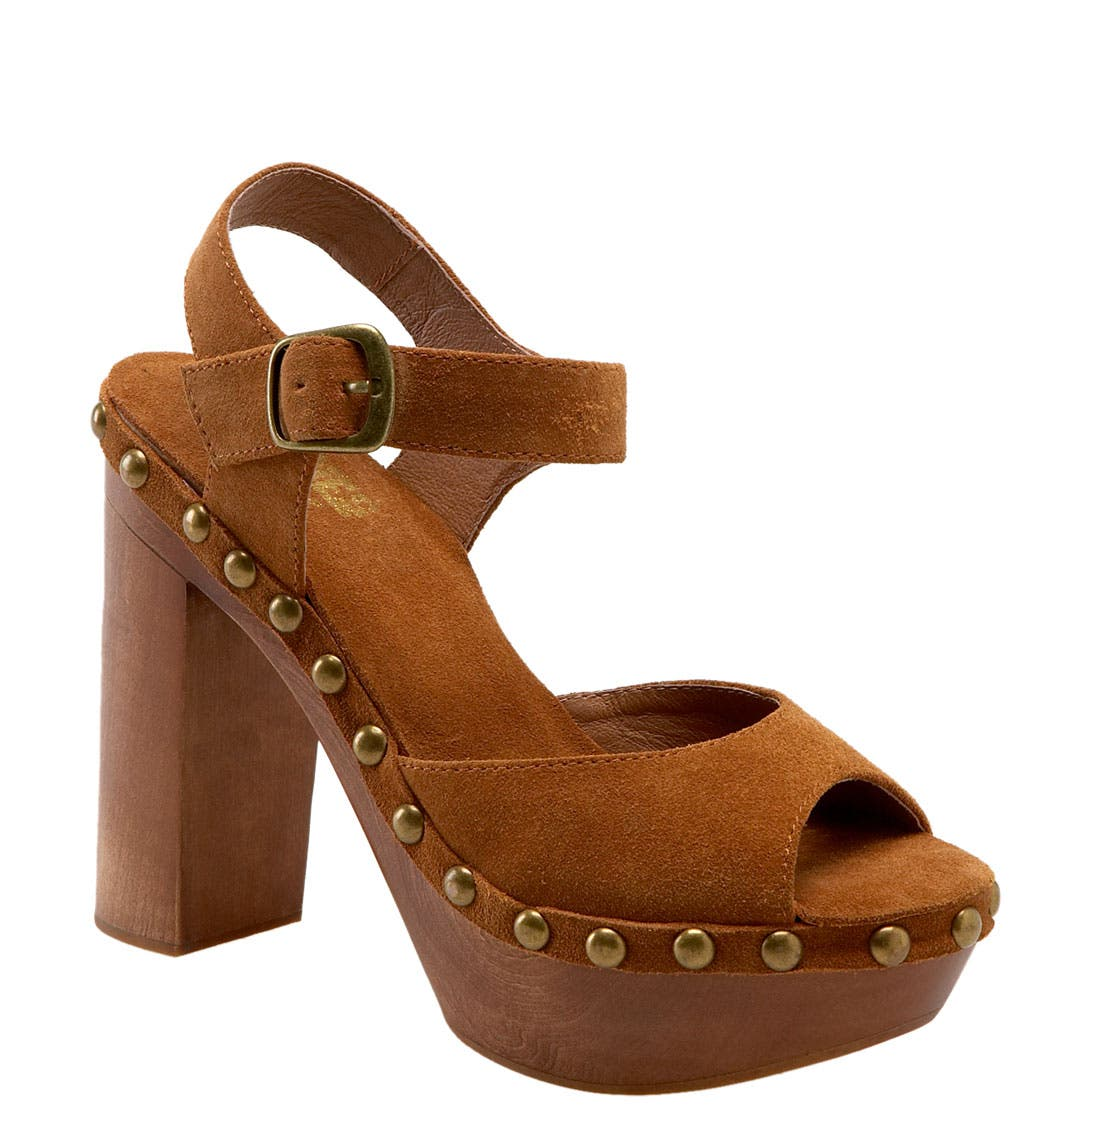 Alternate Image 1 Selected - Jeffrey Campbell 'Splendid' Sandal